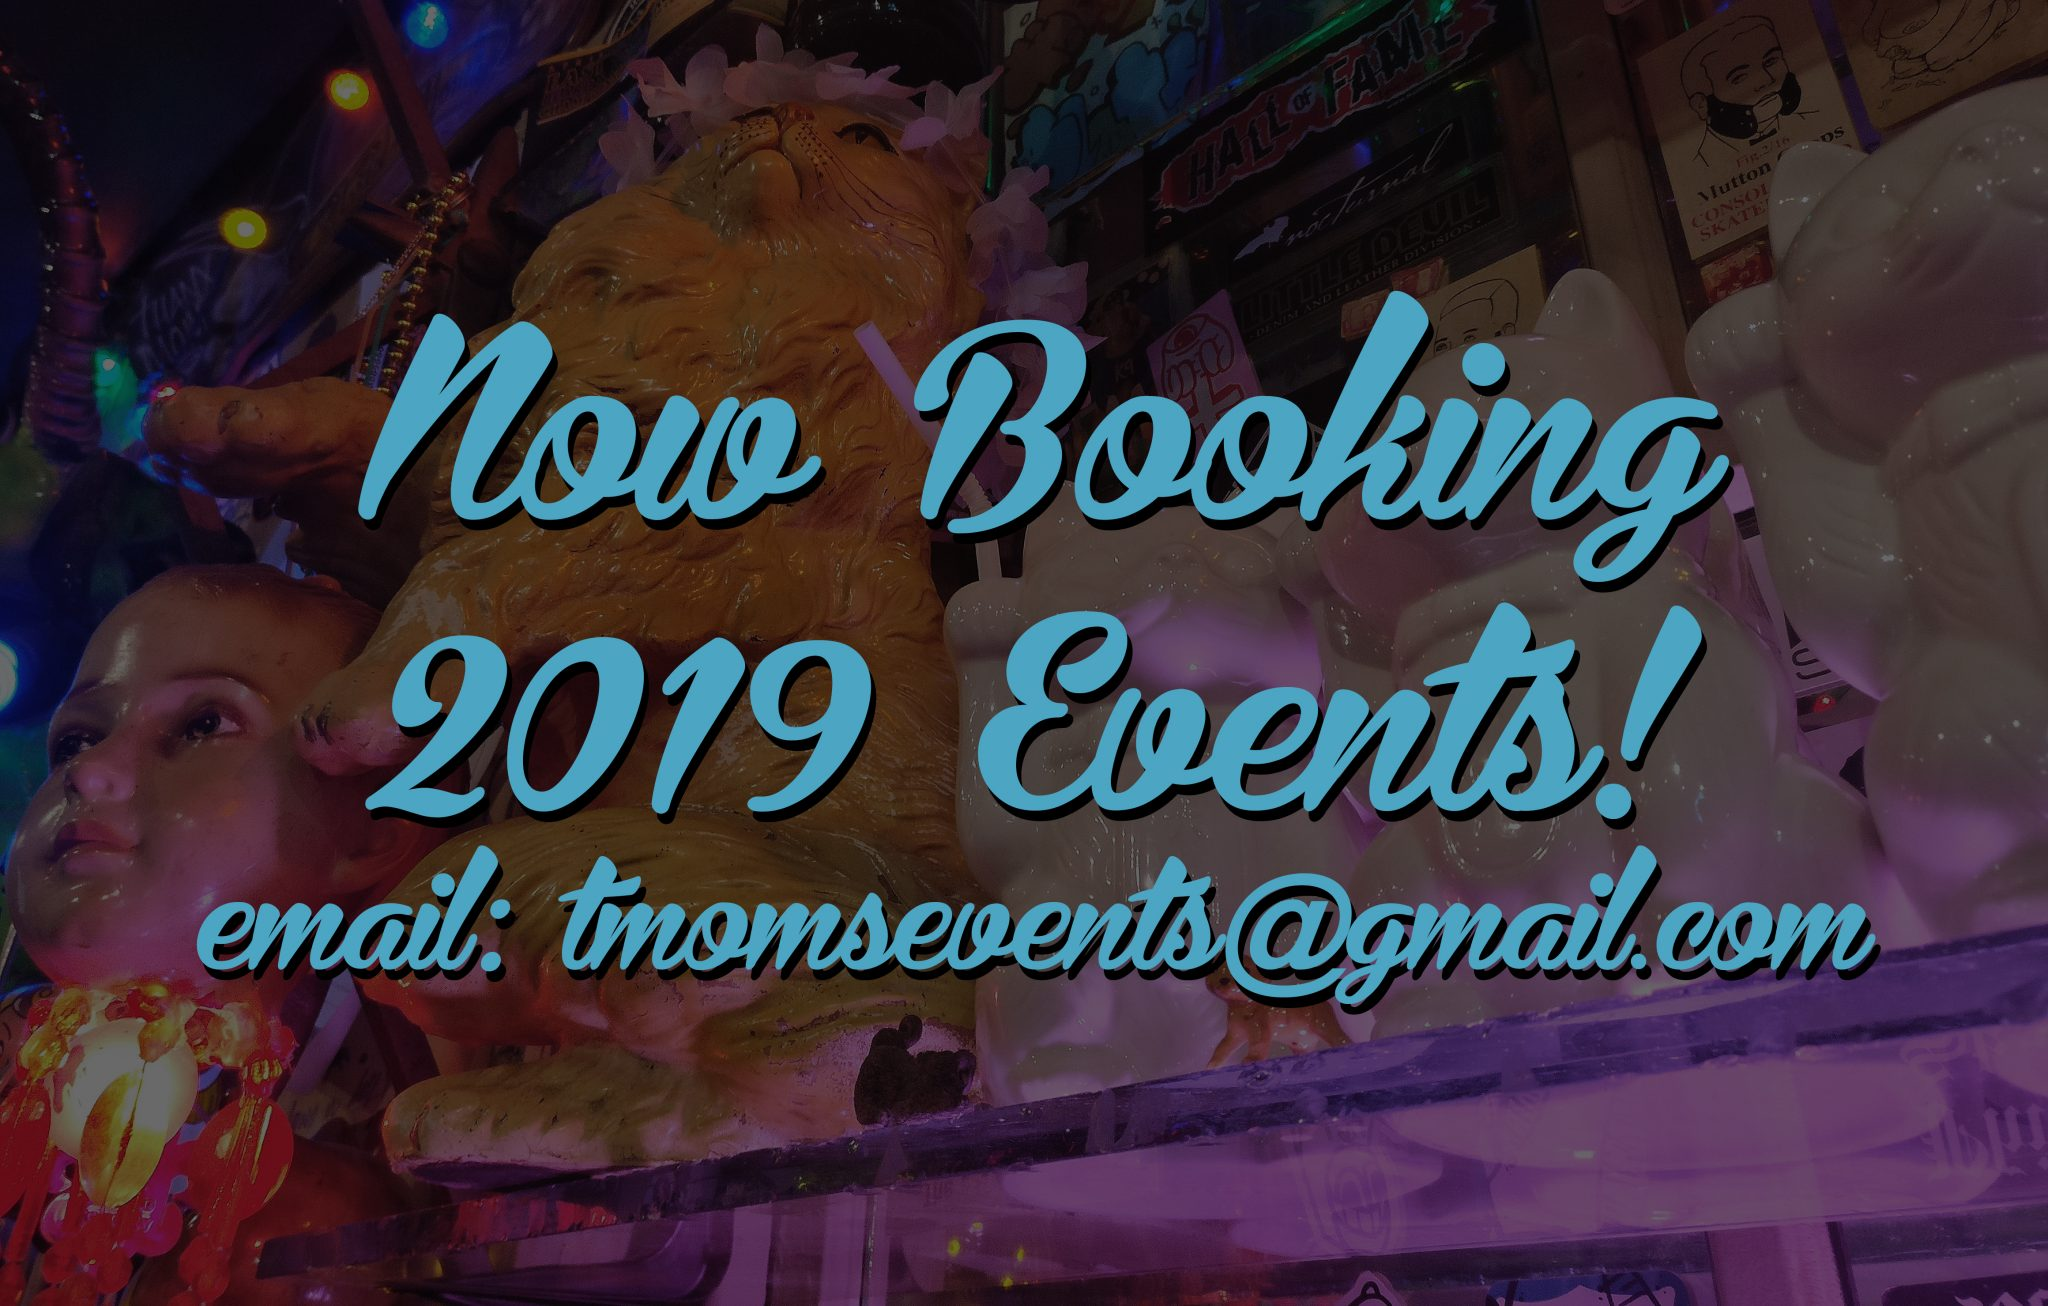 2097f0ad Now Booking 2019 Events at Tattooed Mom!